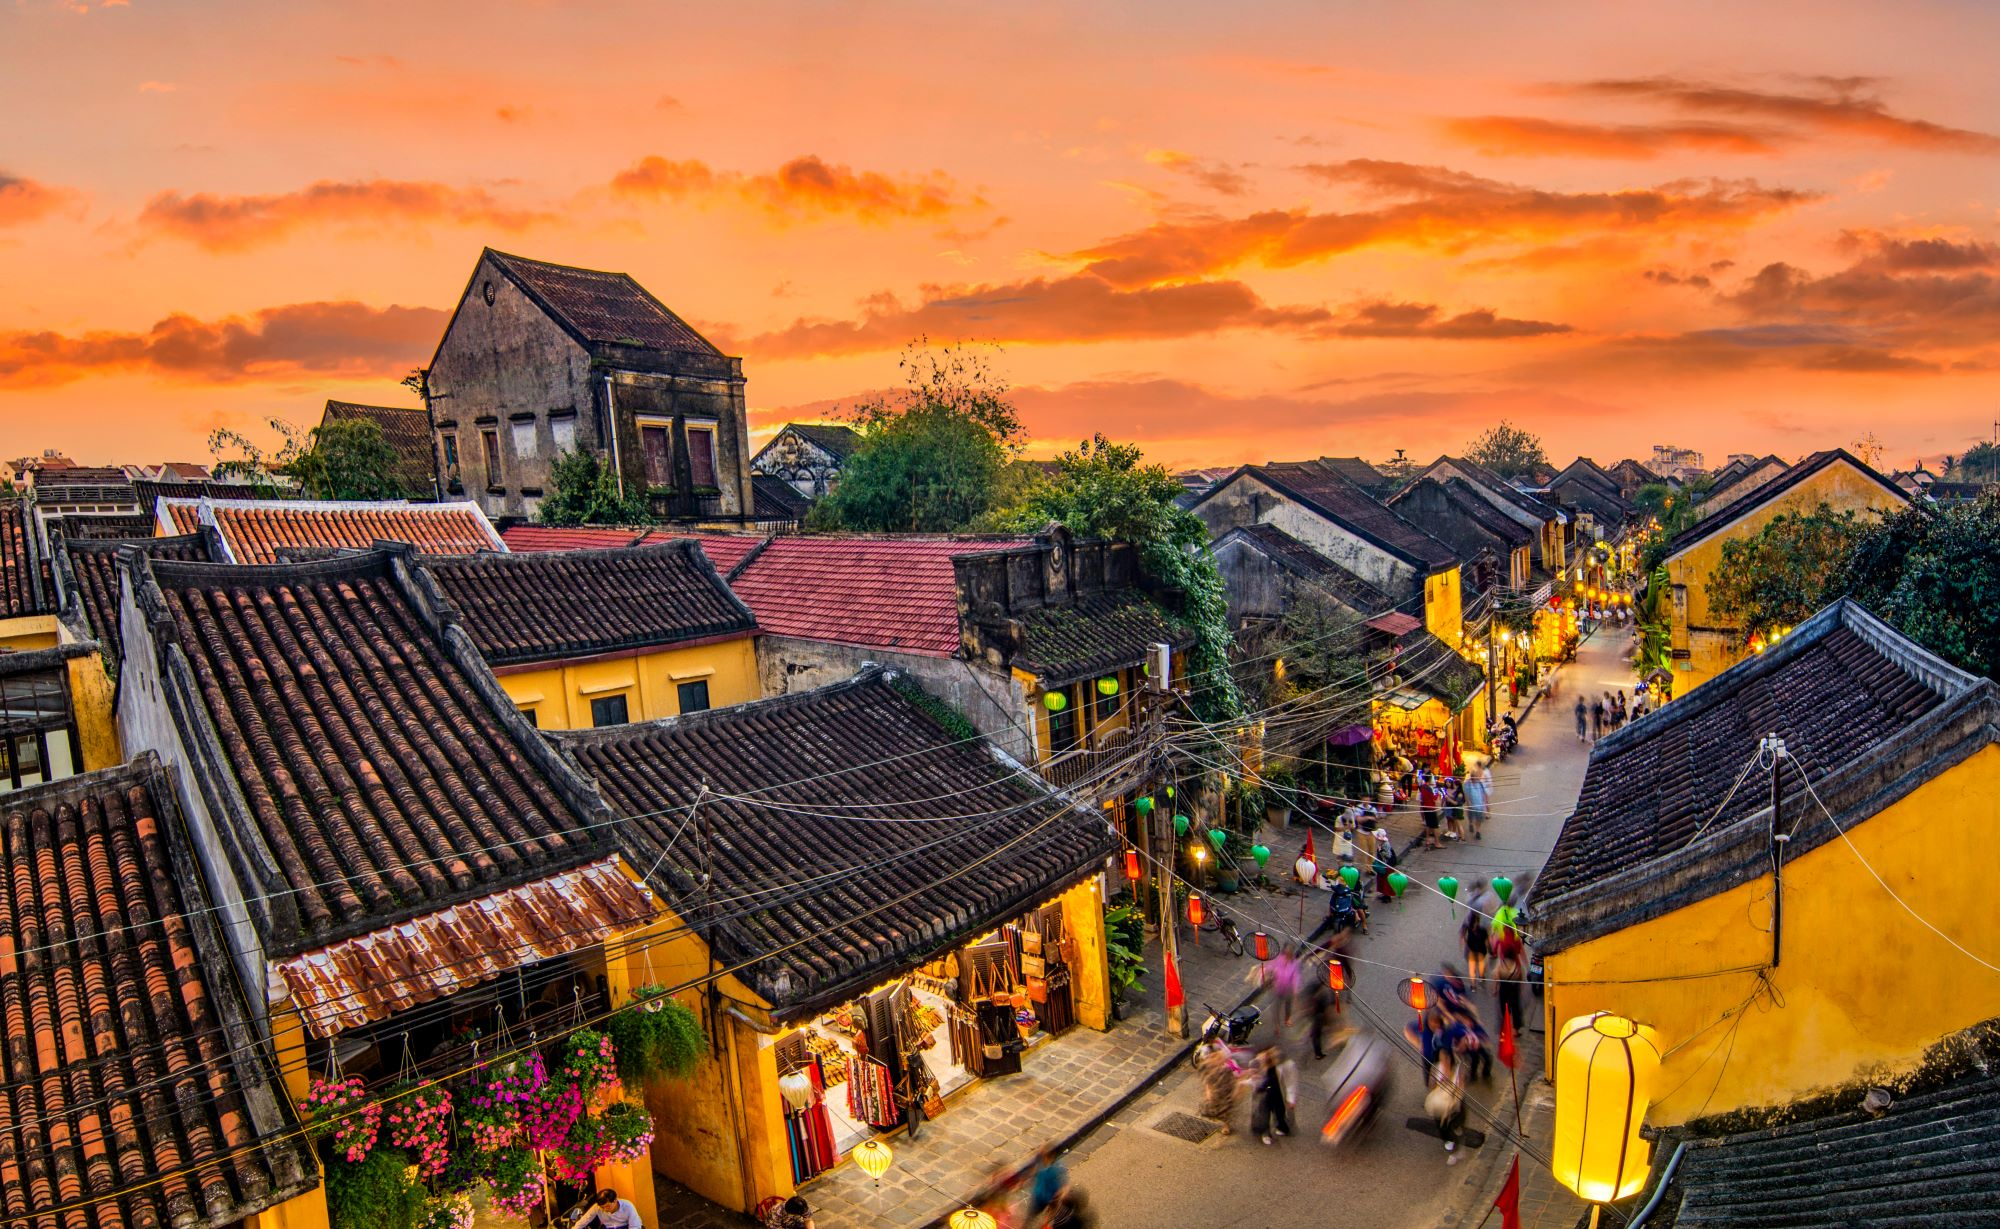 Hoi An, which is in central of Vietnam